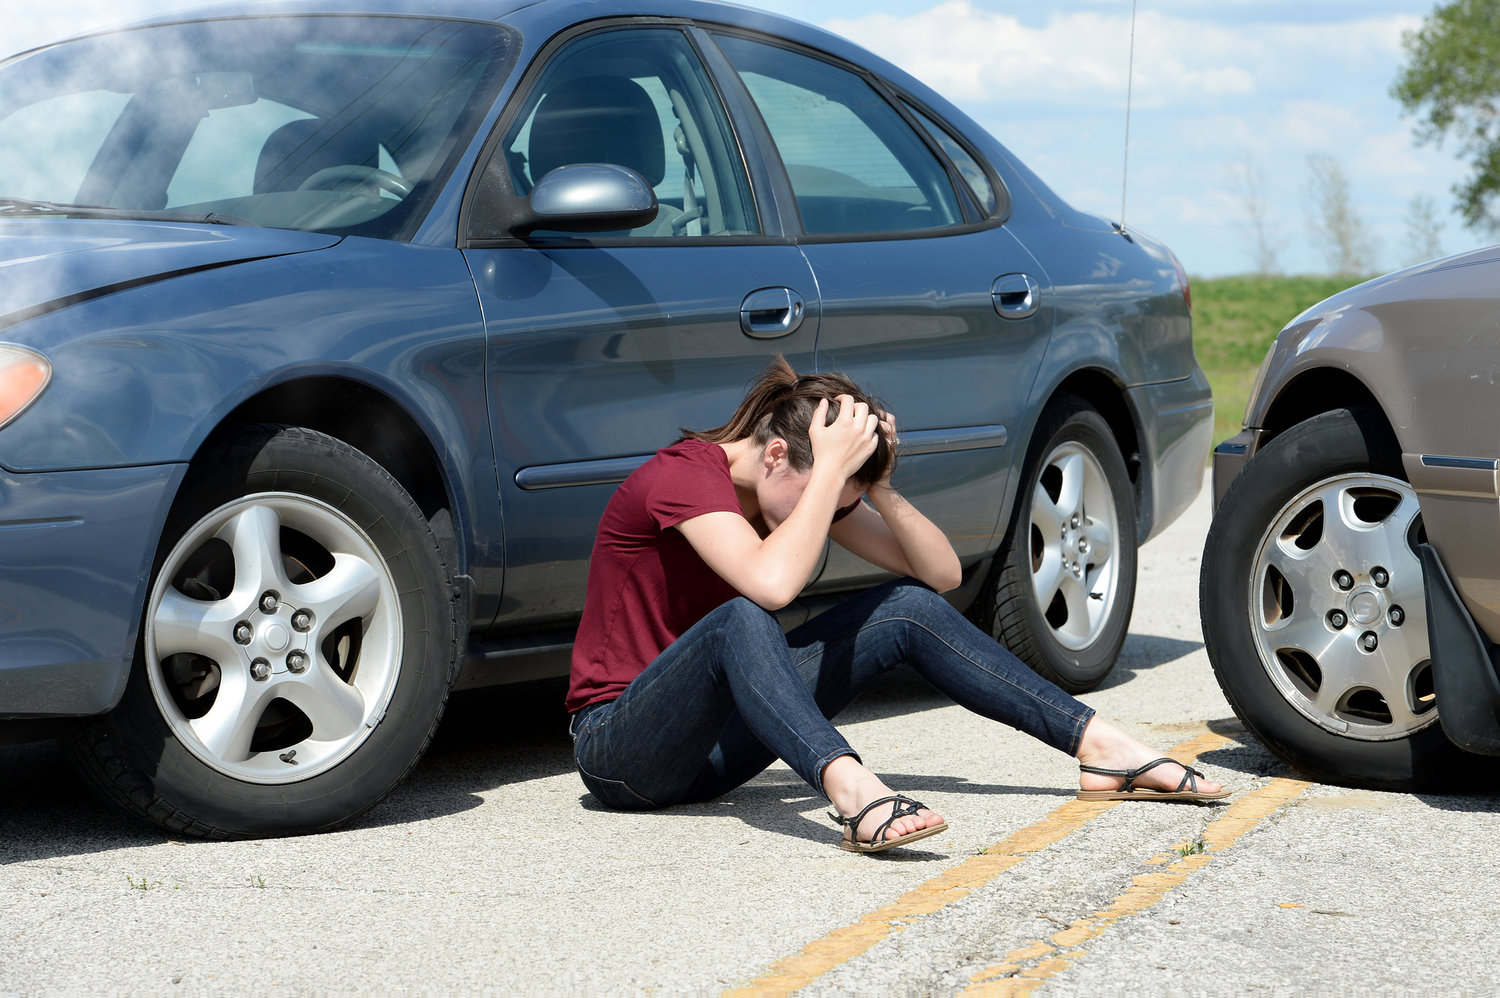 A Comprehensive Guide On Car Crash Injuries From An Accident Lawyer